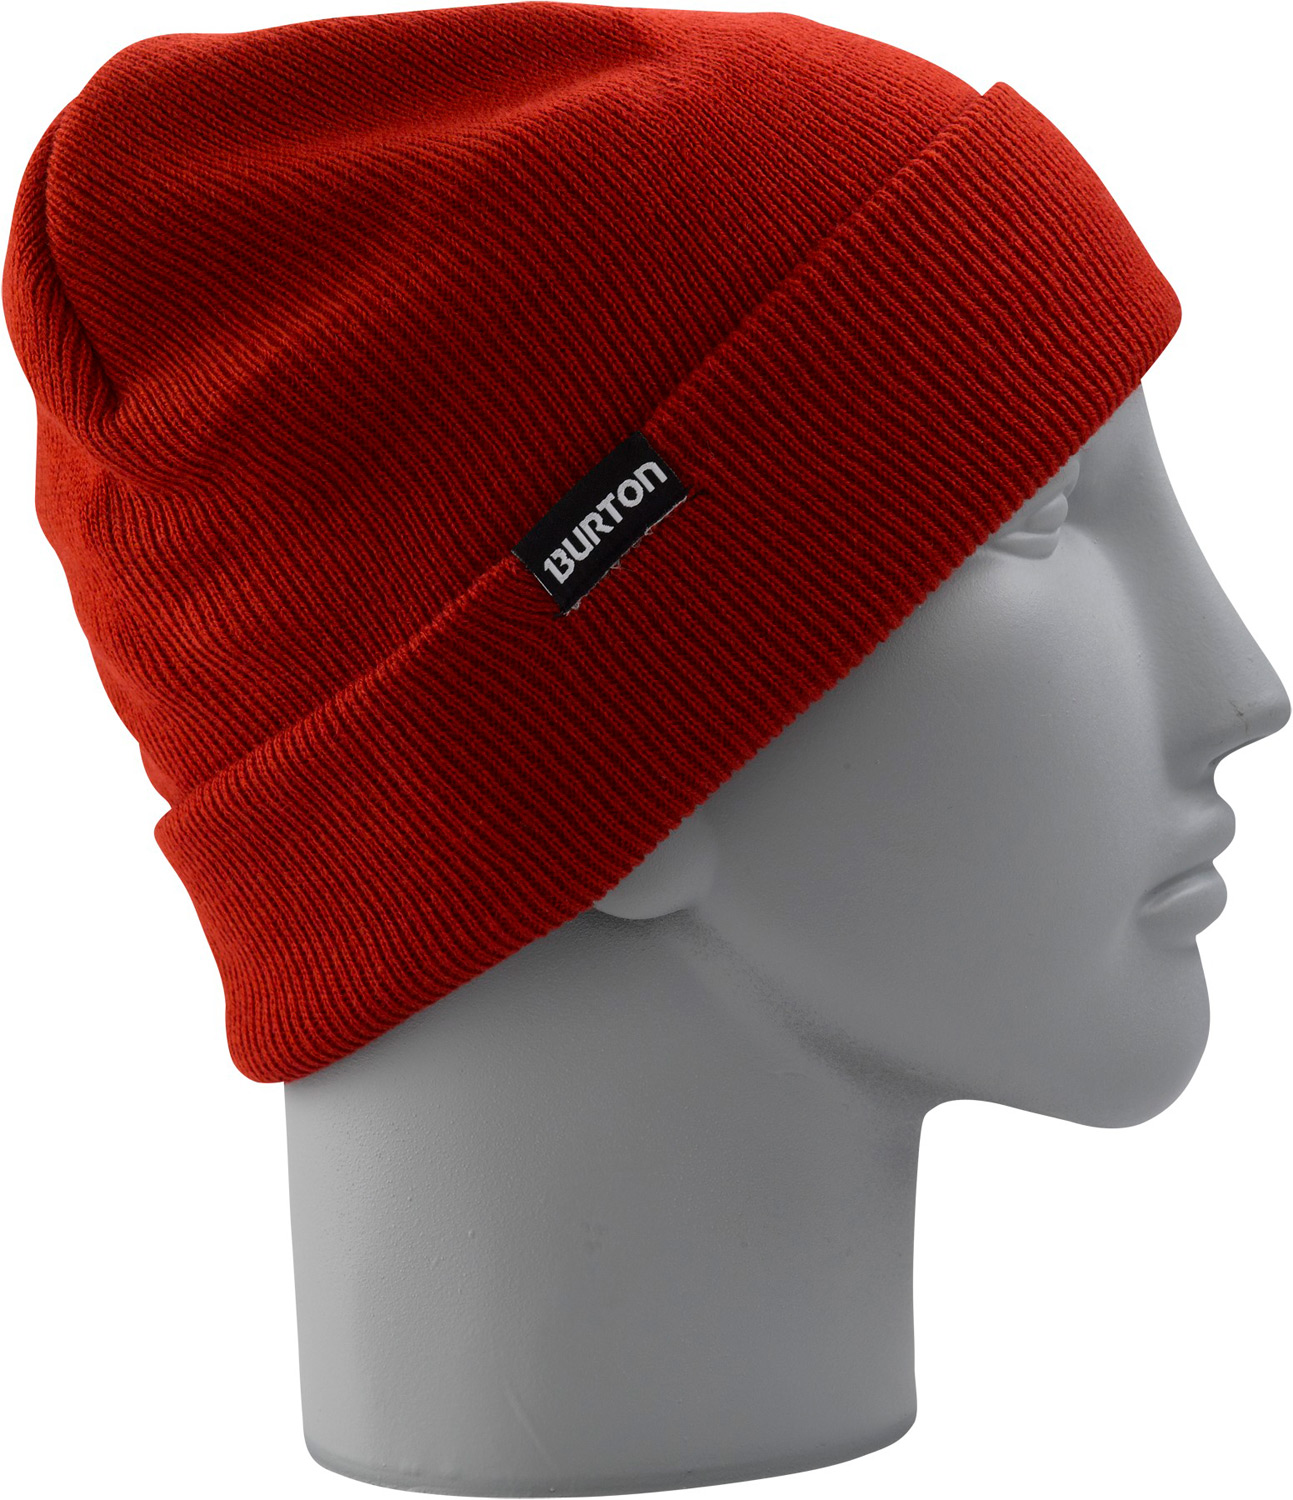 Snowboard Key Features of the Burton Kactusbunch Beanie: 100% Fine Knit Acrylic Fold Up with Super Slouch Fit - $9.95